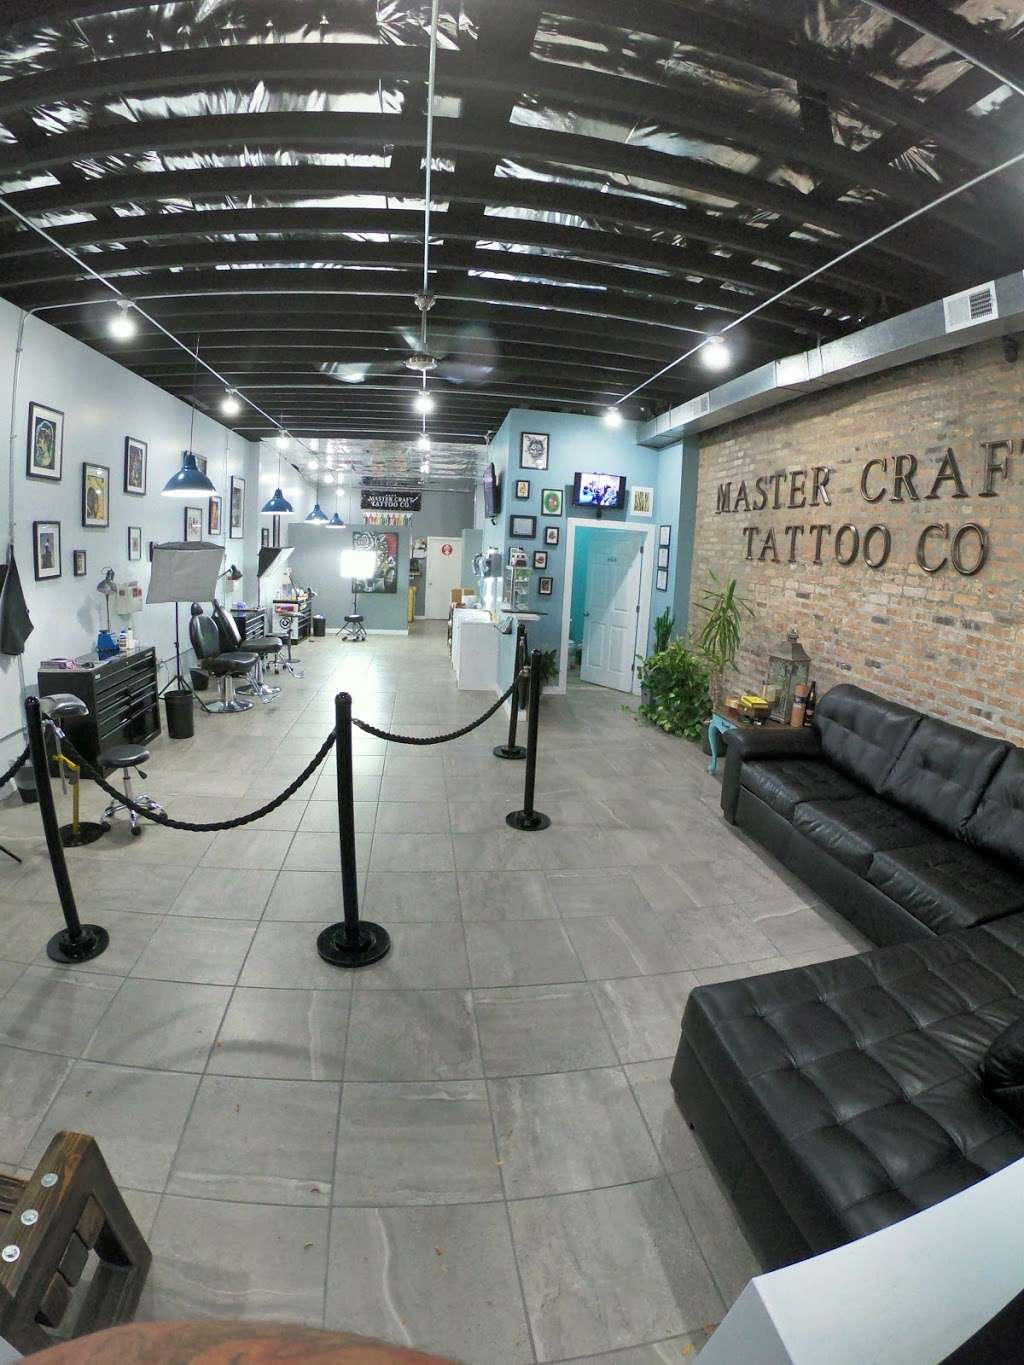 Master Craft Tattoo Co. - store  | Photo 6 of 10 | Address: 1637, 5844 S Archer Ave, Chicago, IL 60638, USA | Phone: (312) 806-4342